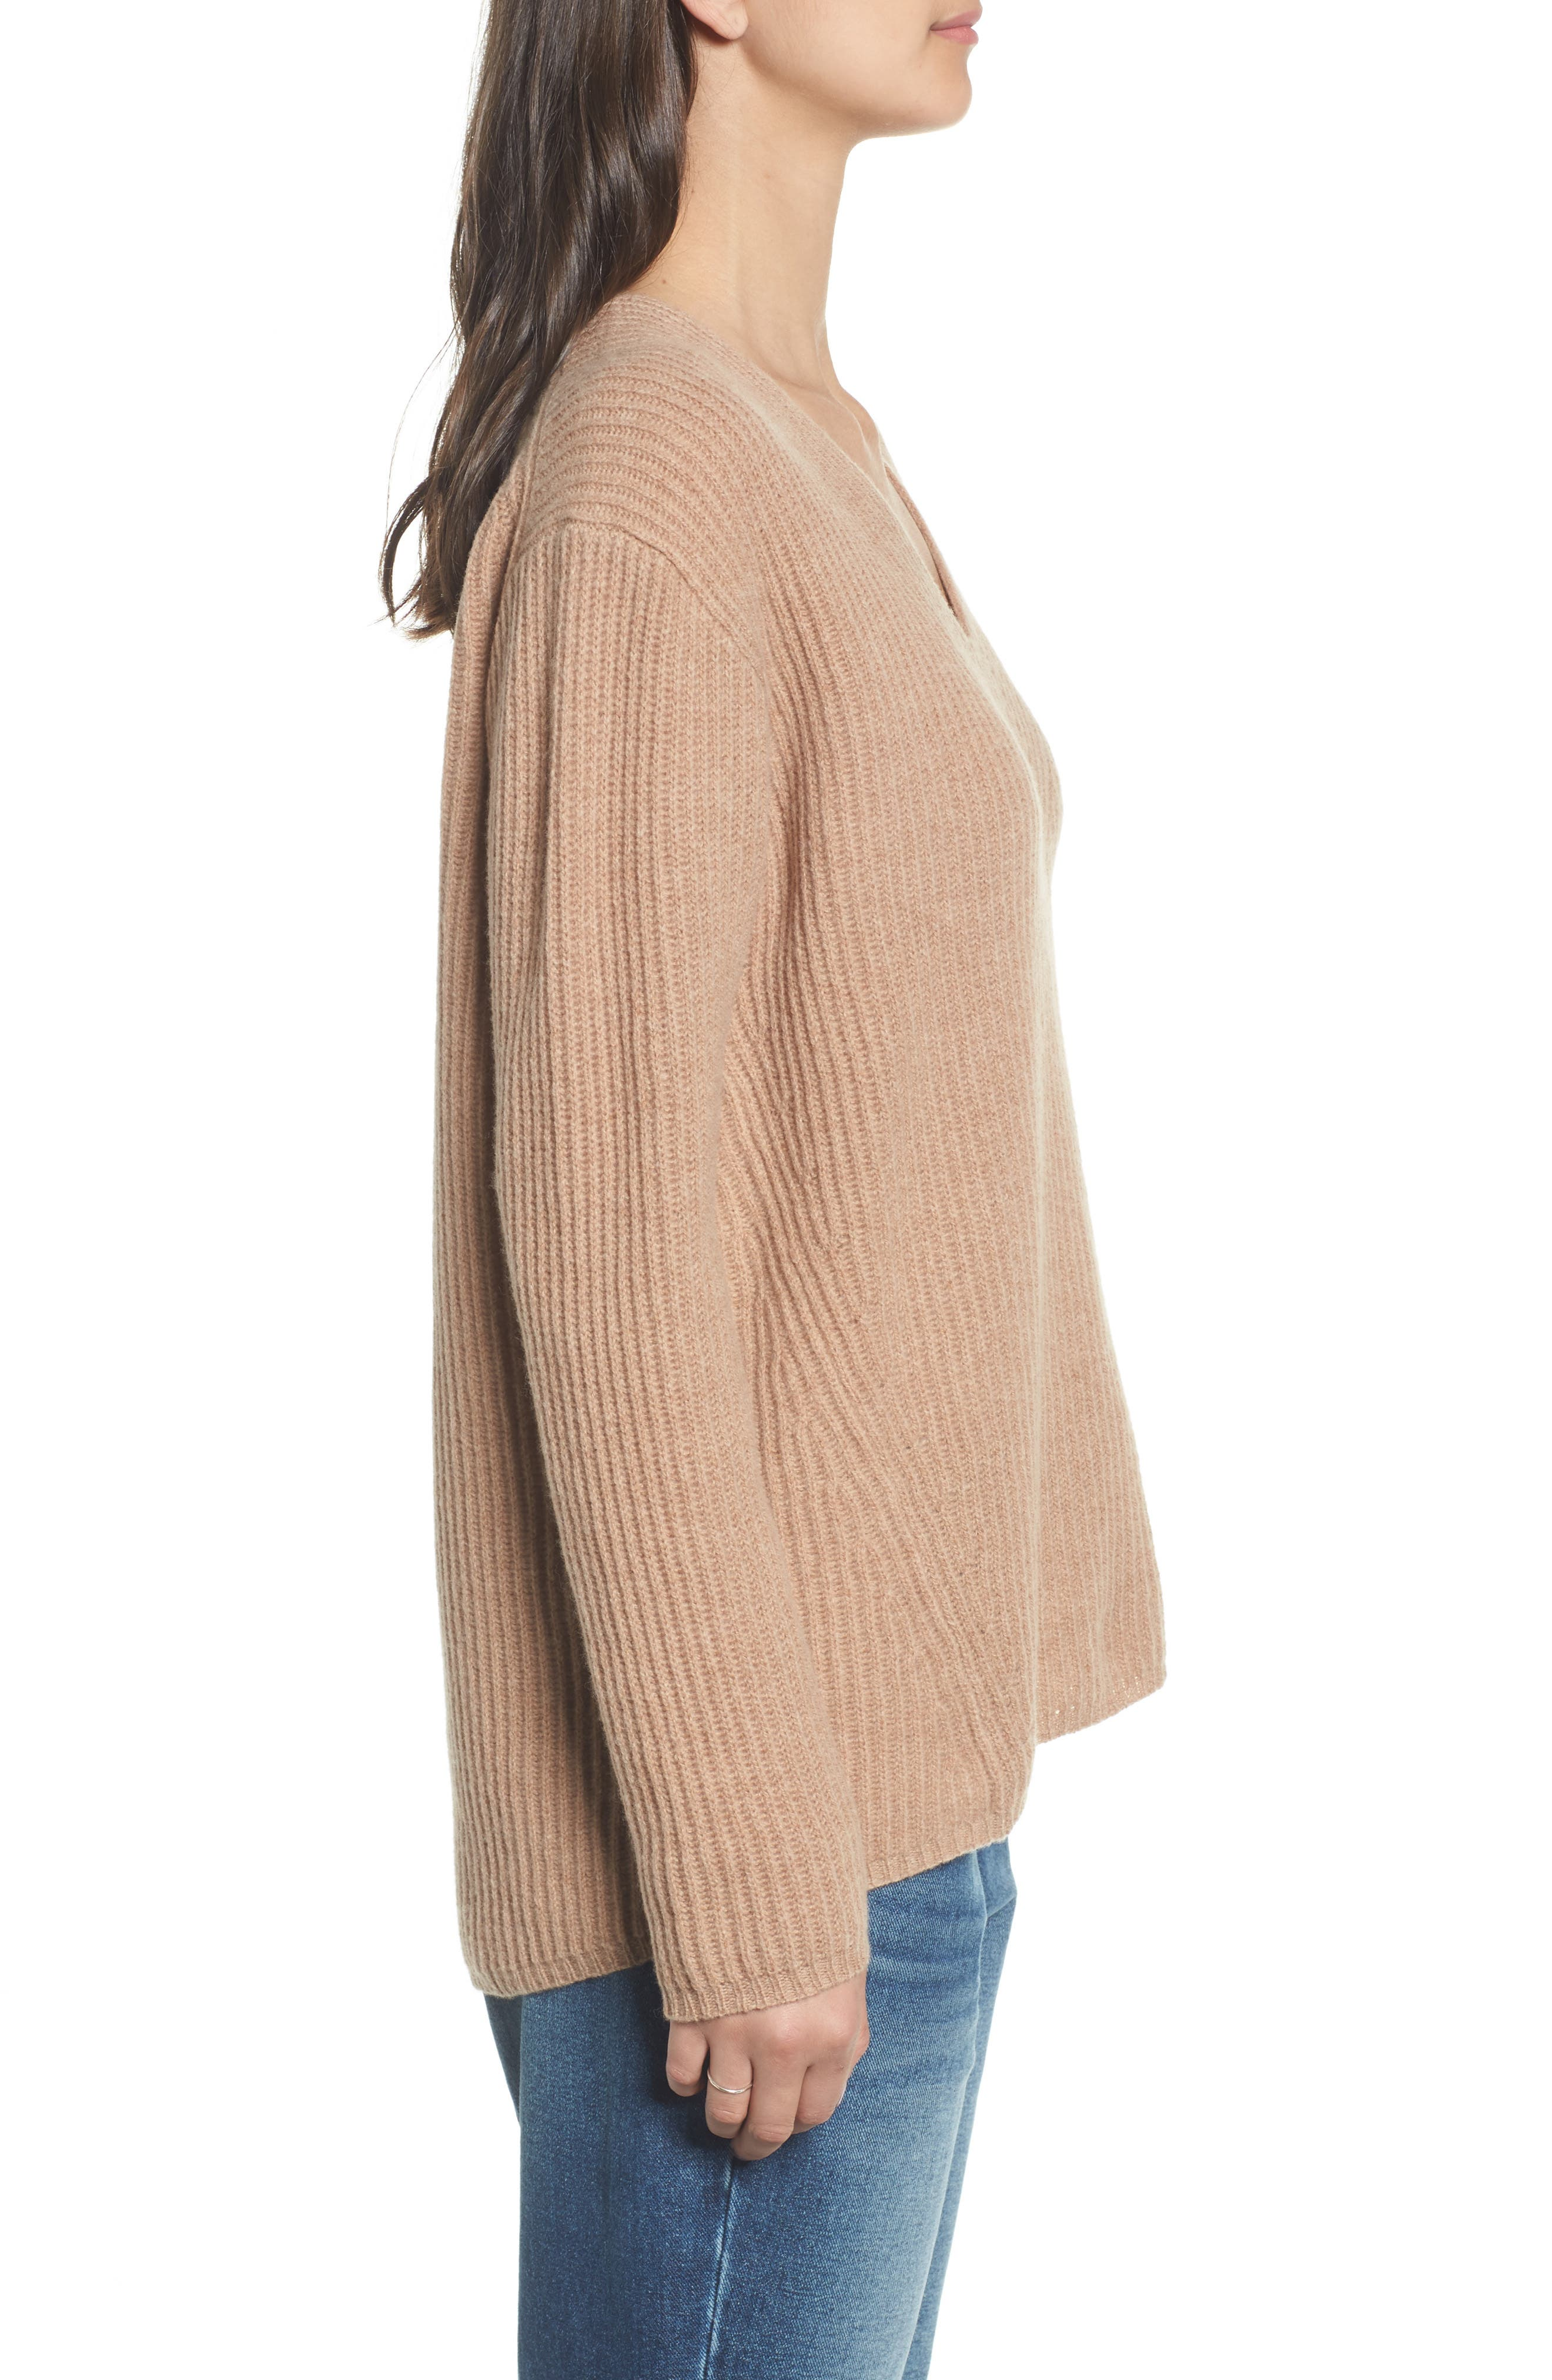 Woodside Pullover Sweater,                             Alternate thumbnail 16, color,